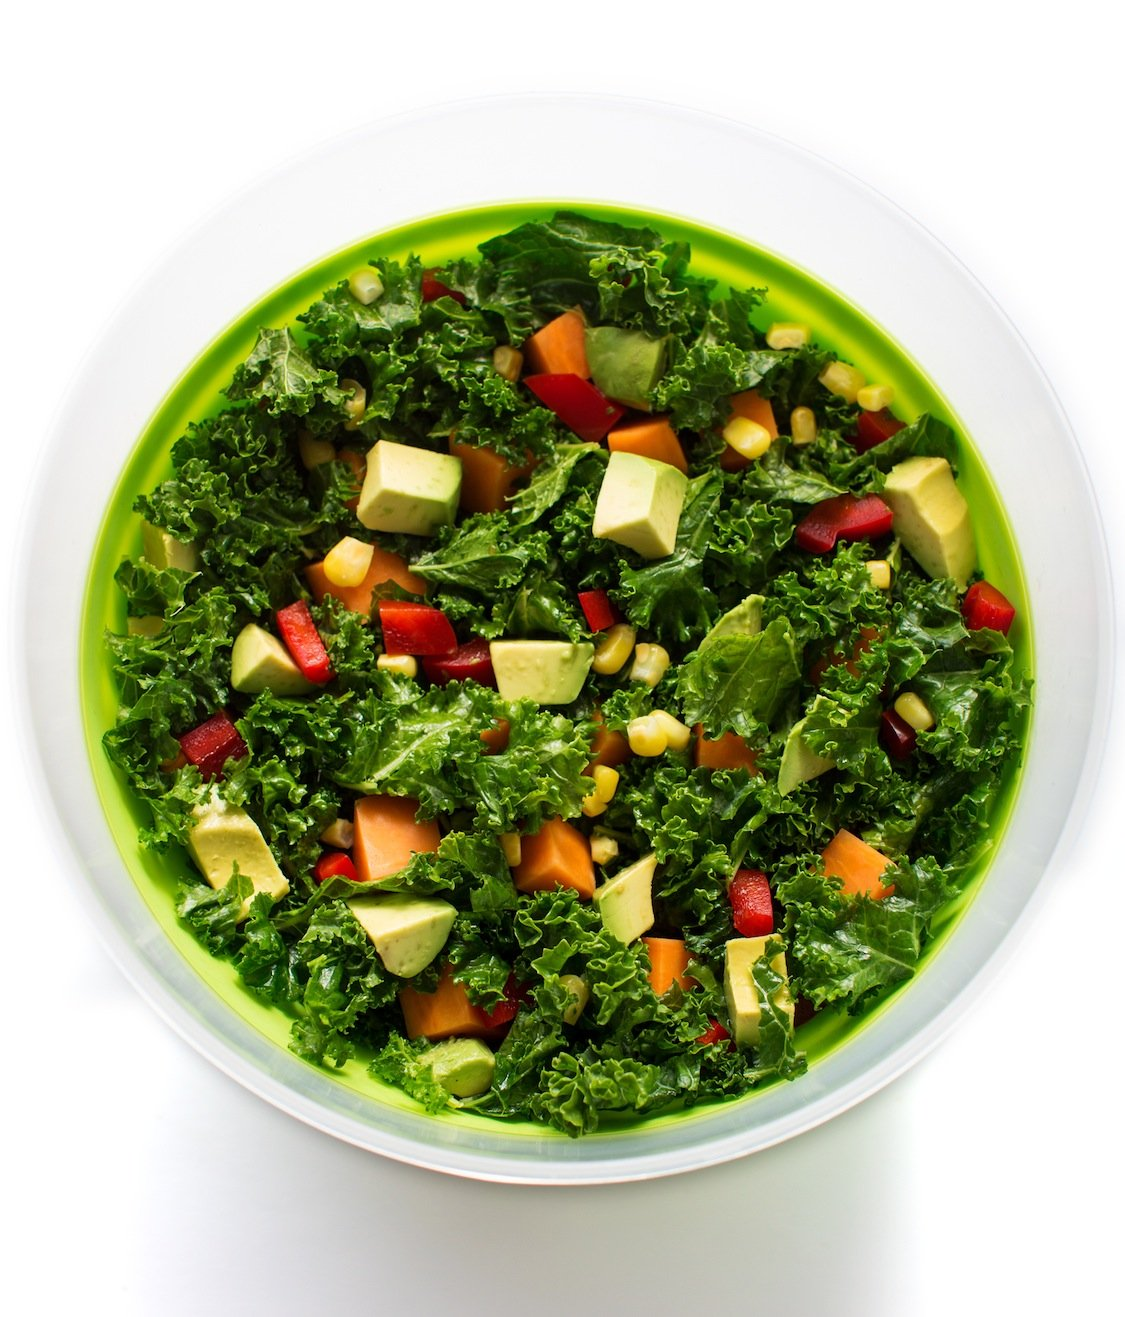 Massaged Kale salad with beans and avocado